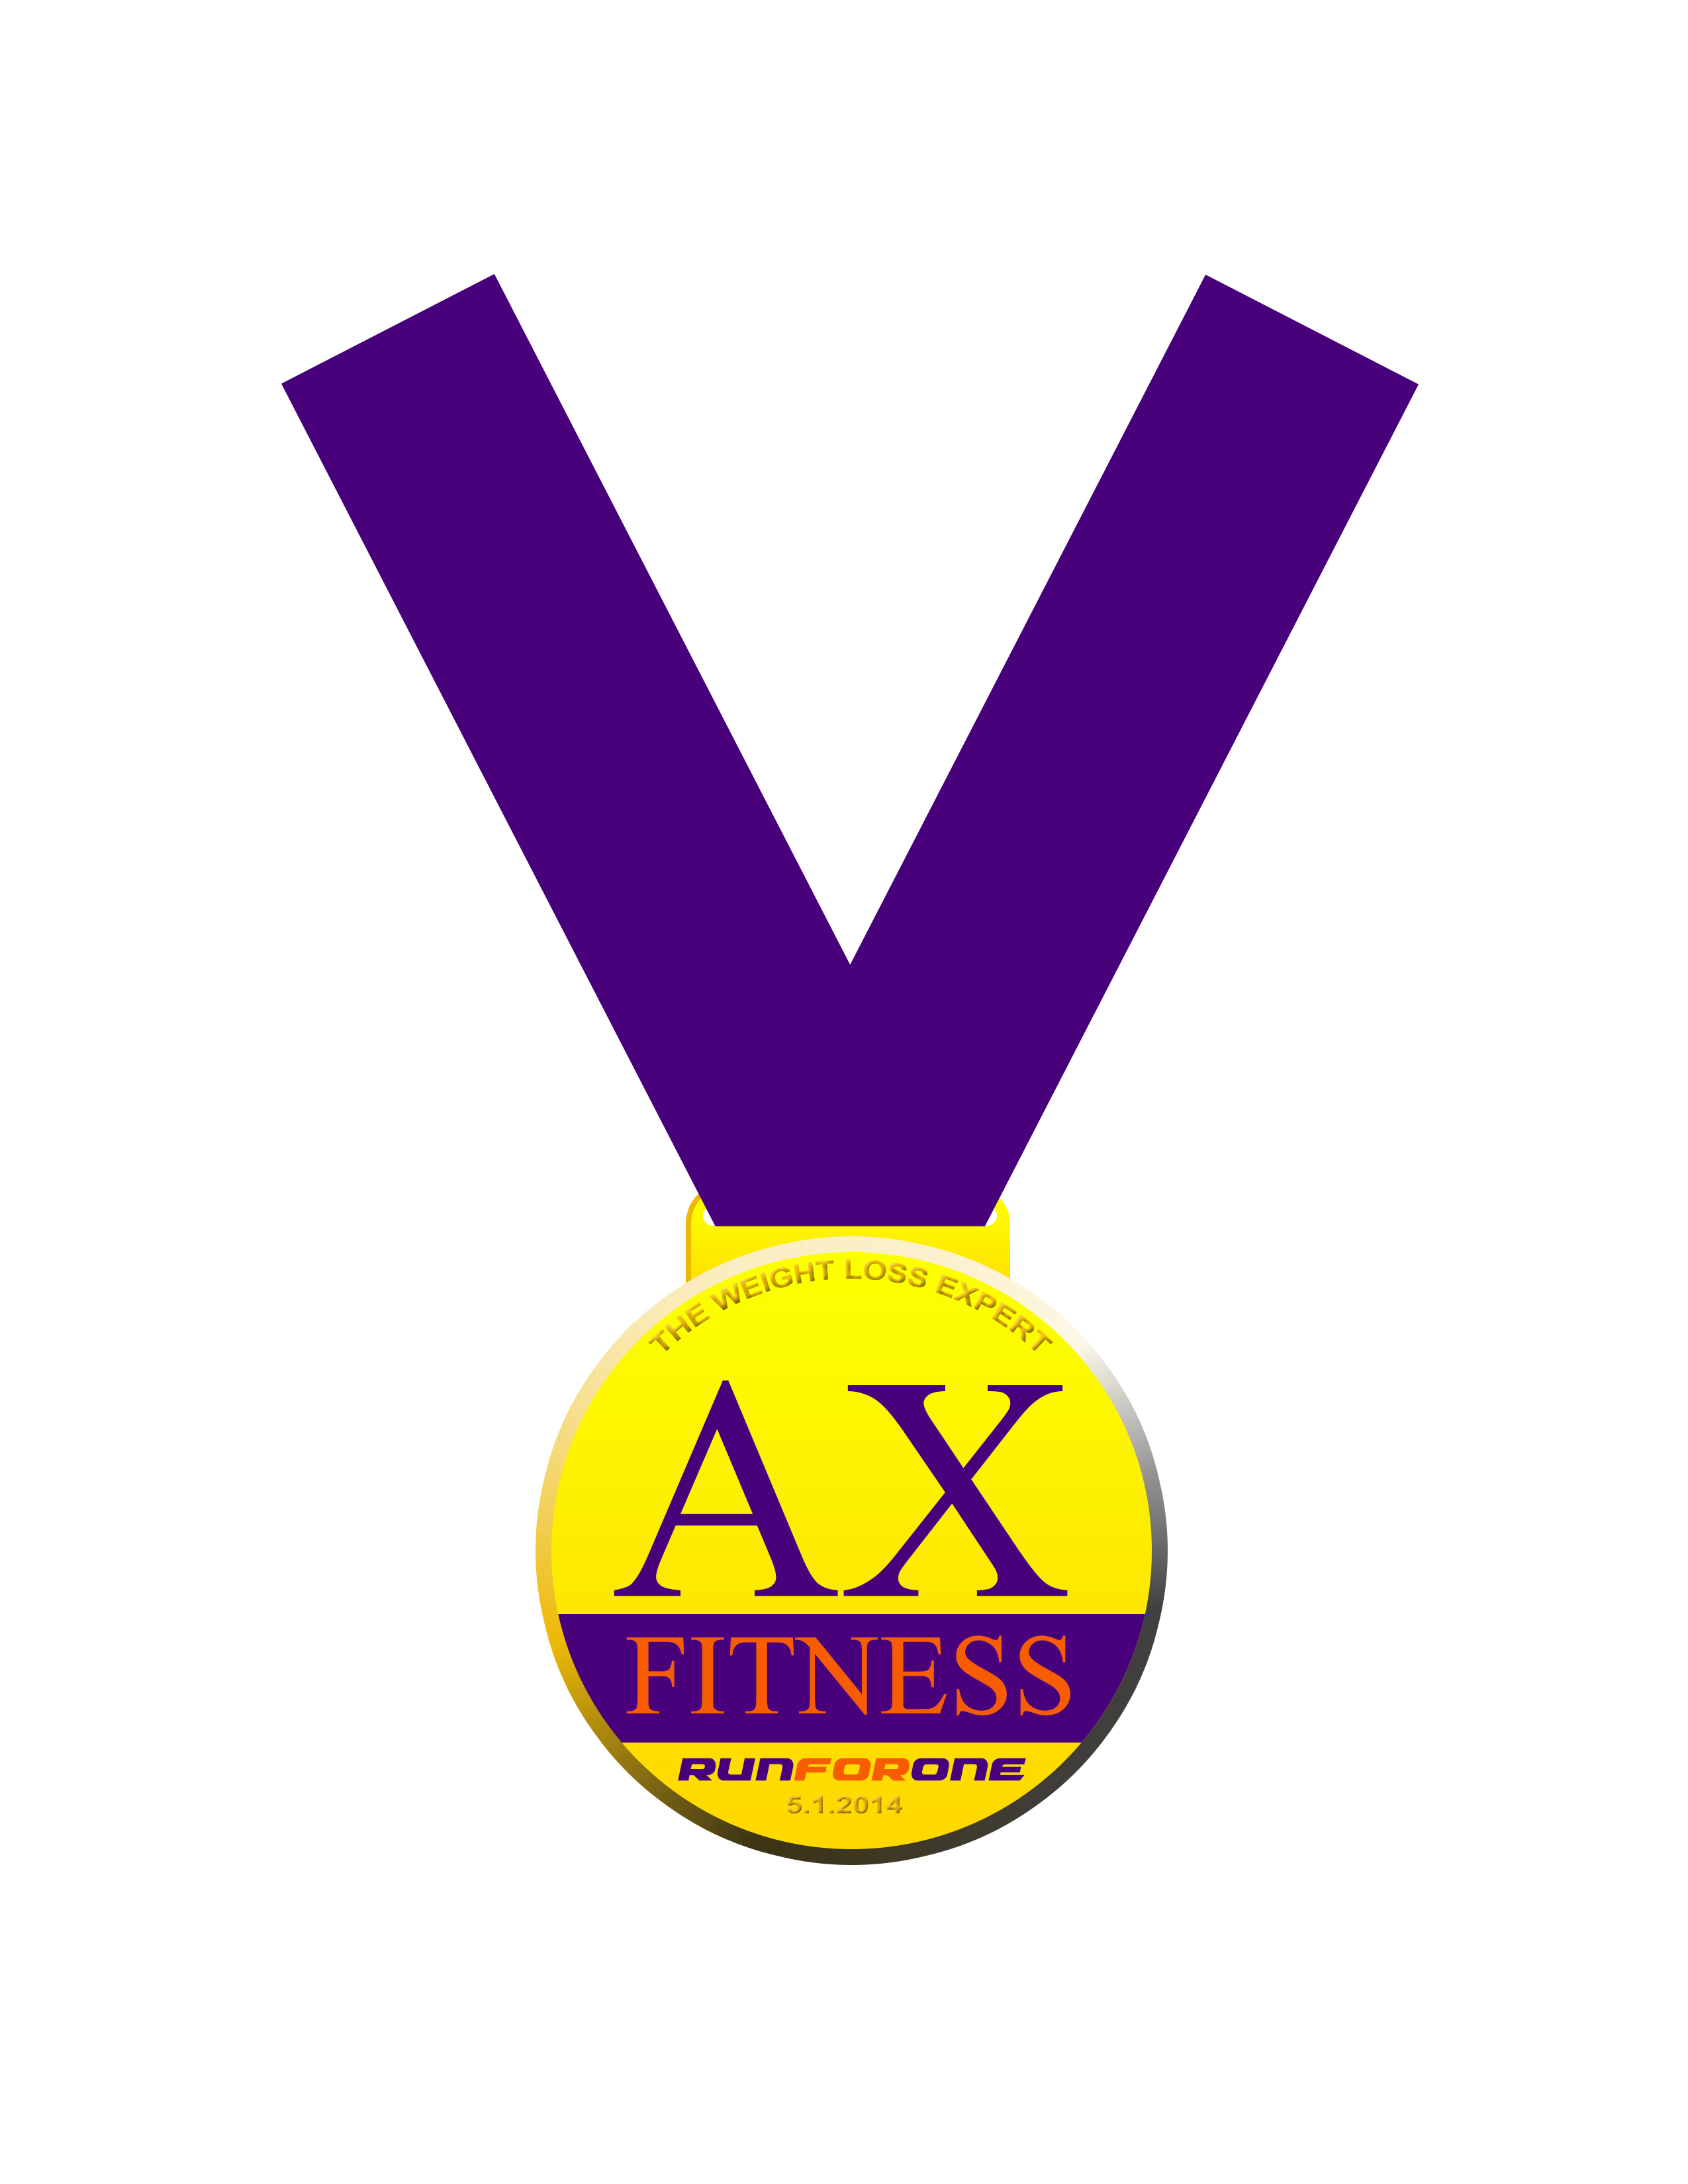 ax-fitness-run-for-one-2014-medal